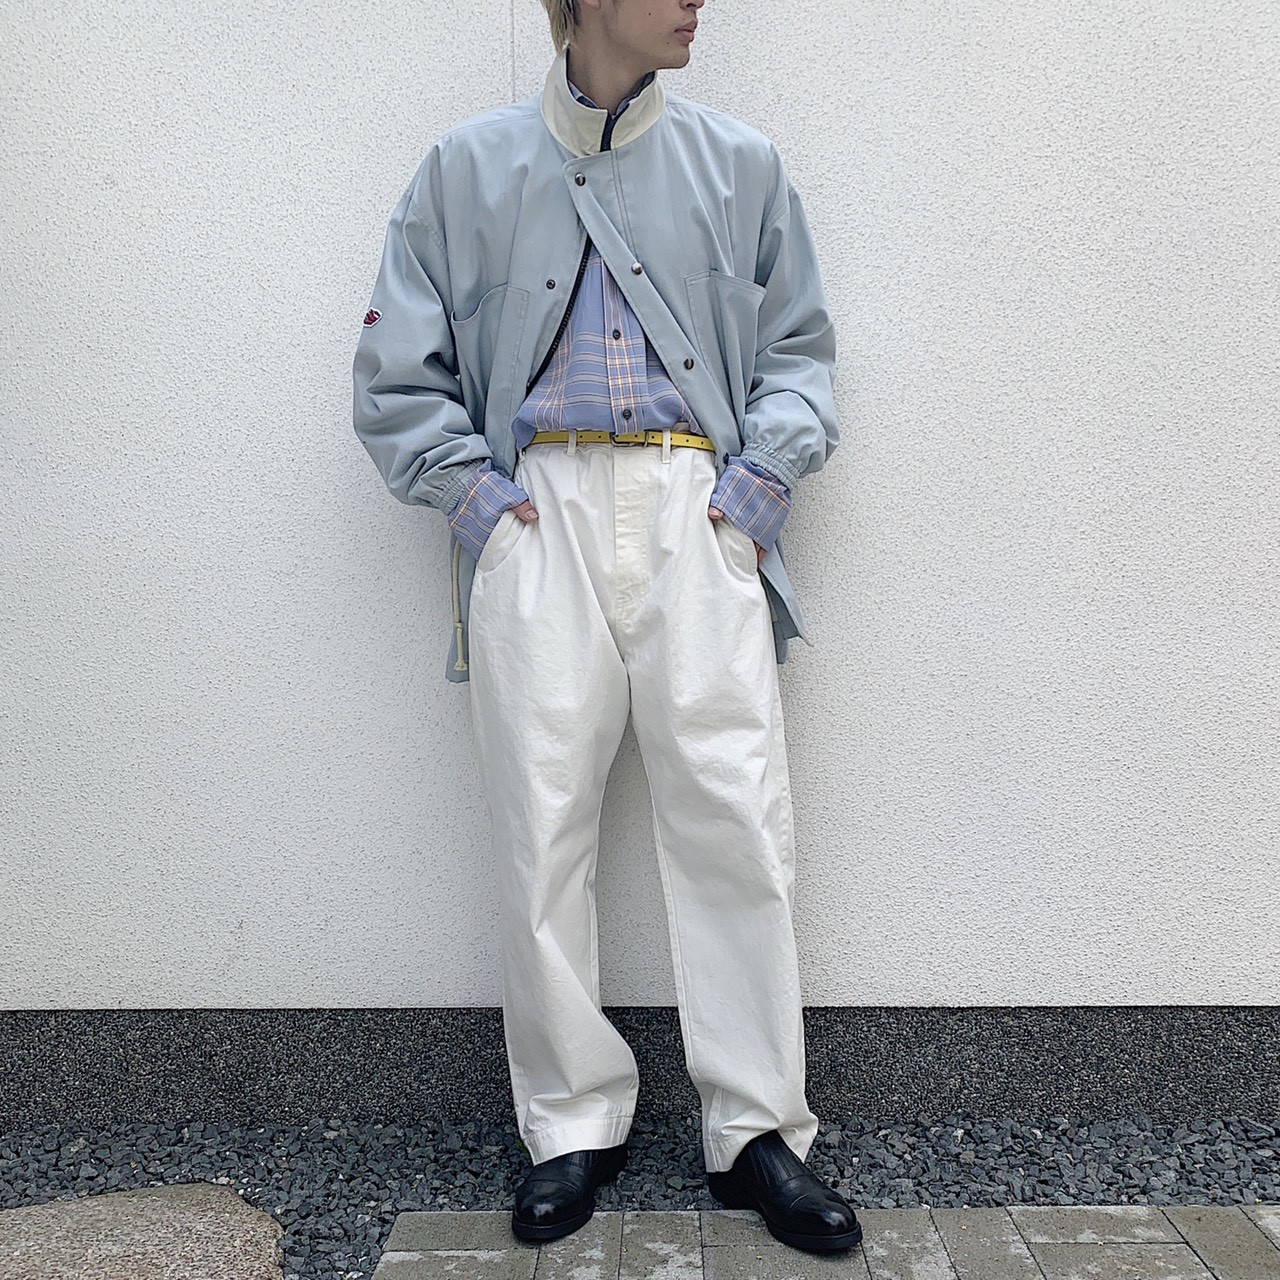 2019.04.11 styling sample......sugimoto